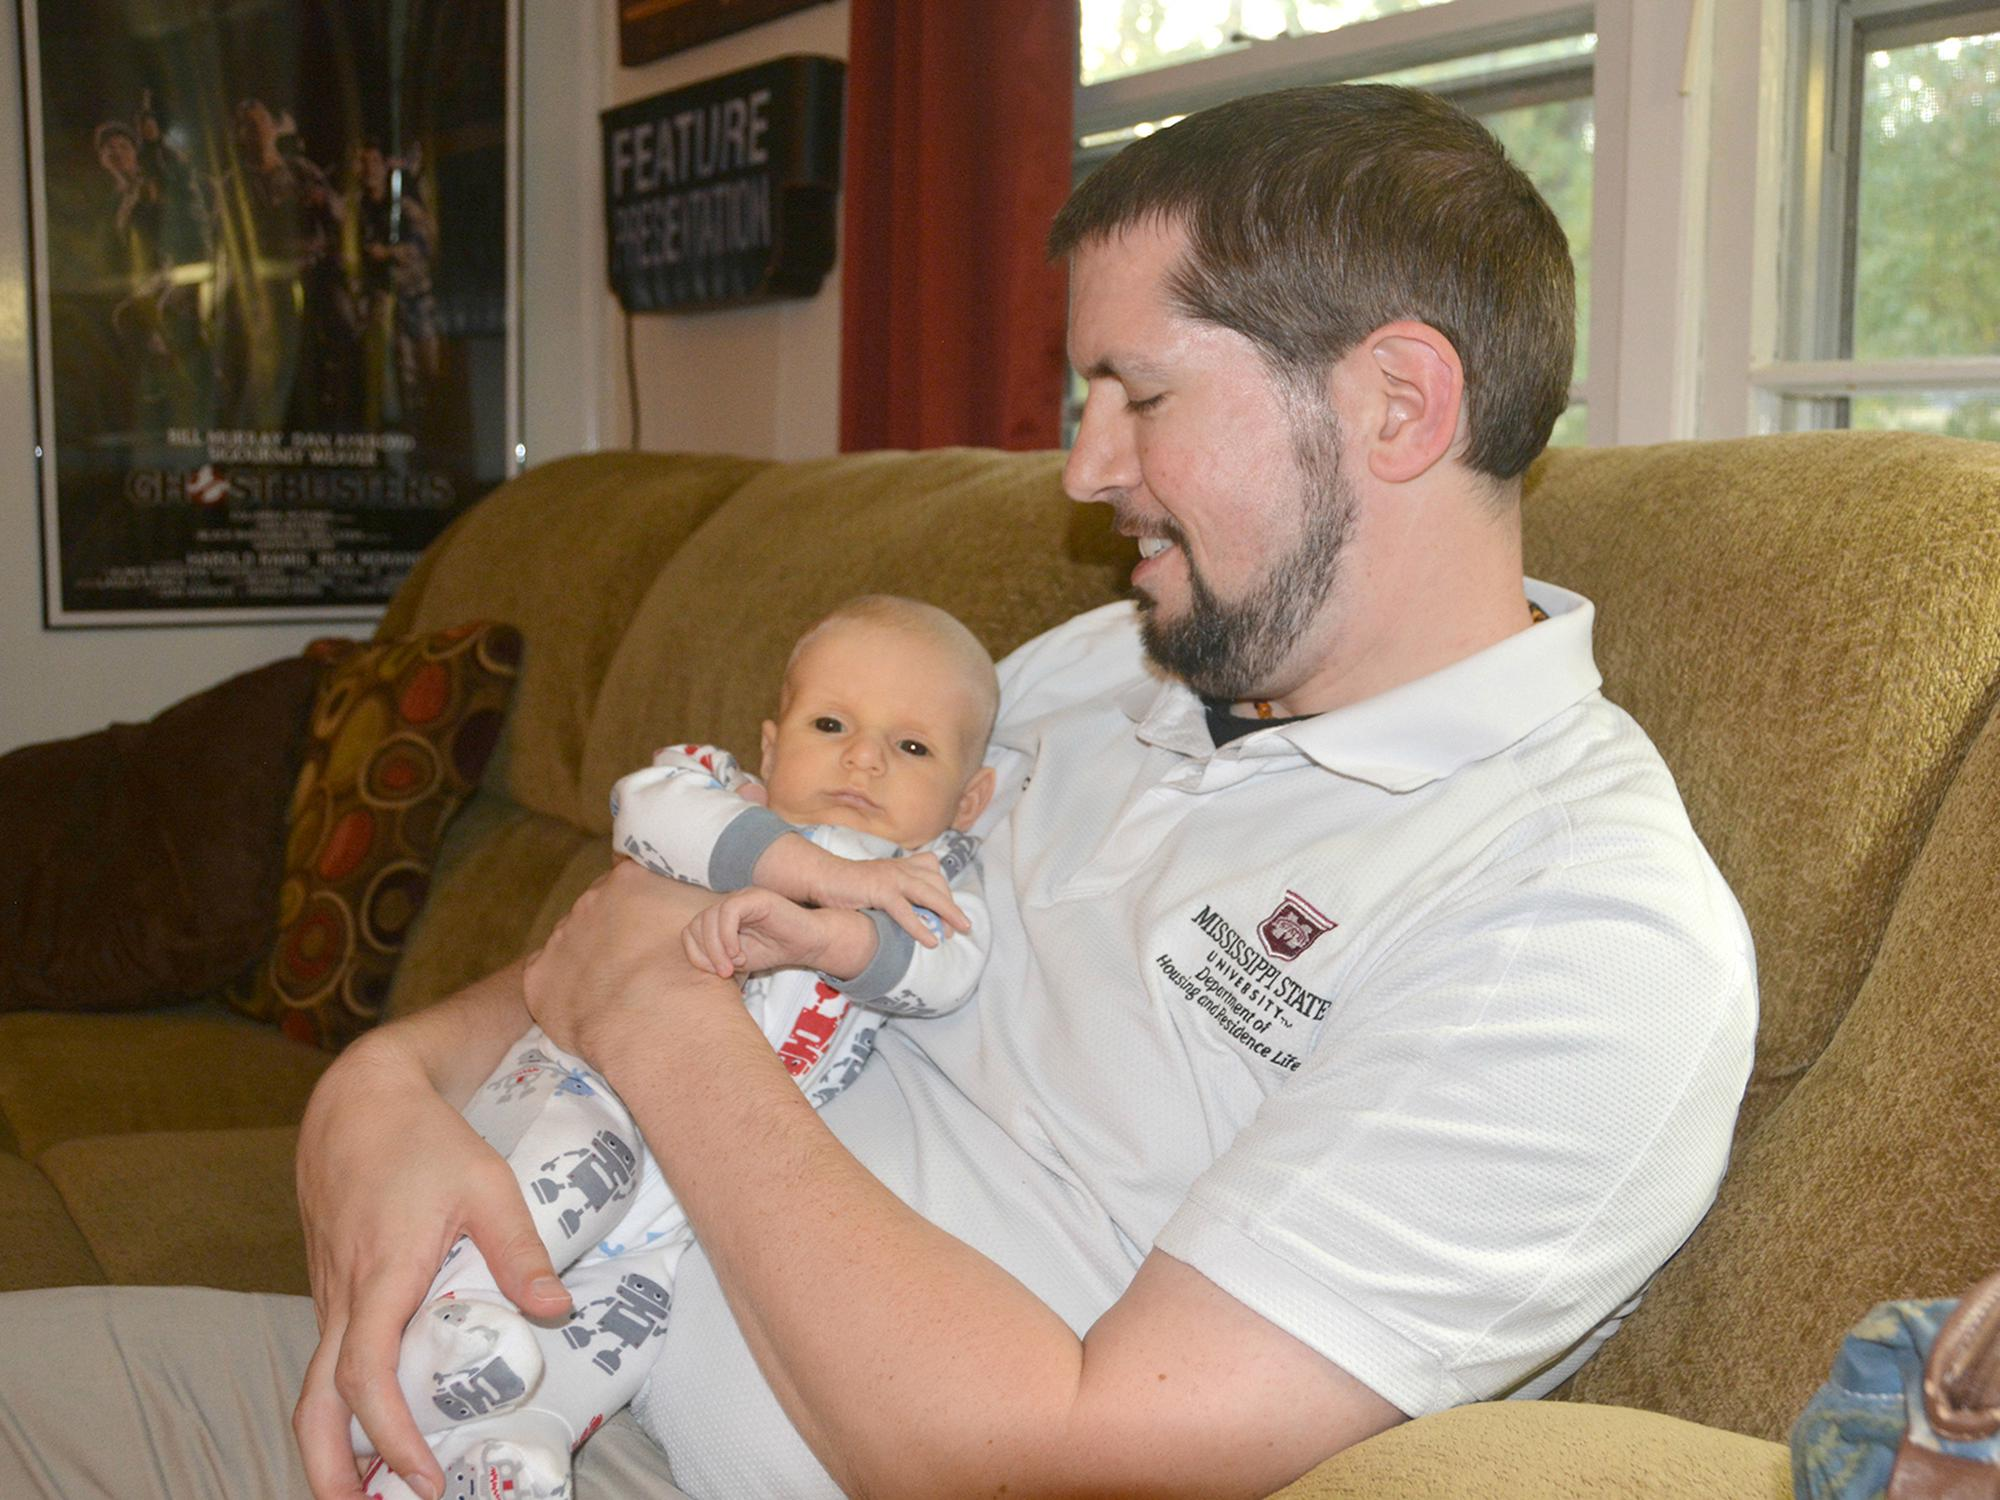 Boone Purser enjoys afternoon cuddles with his son, Benji, on Oct. 31, 2016. Benji is a breastfed baby who thrives on attention from both his parents at his home in Starkville, Mississippi. (Photo by MSU Extension Service/Linda Breazeale)